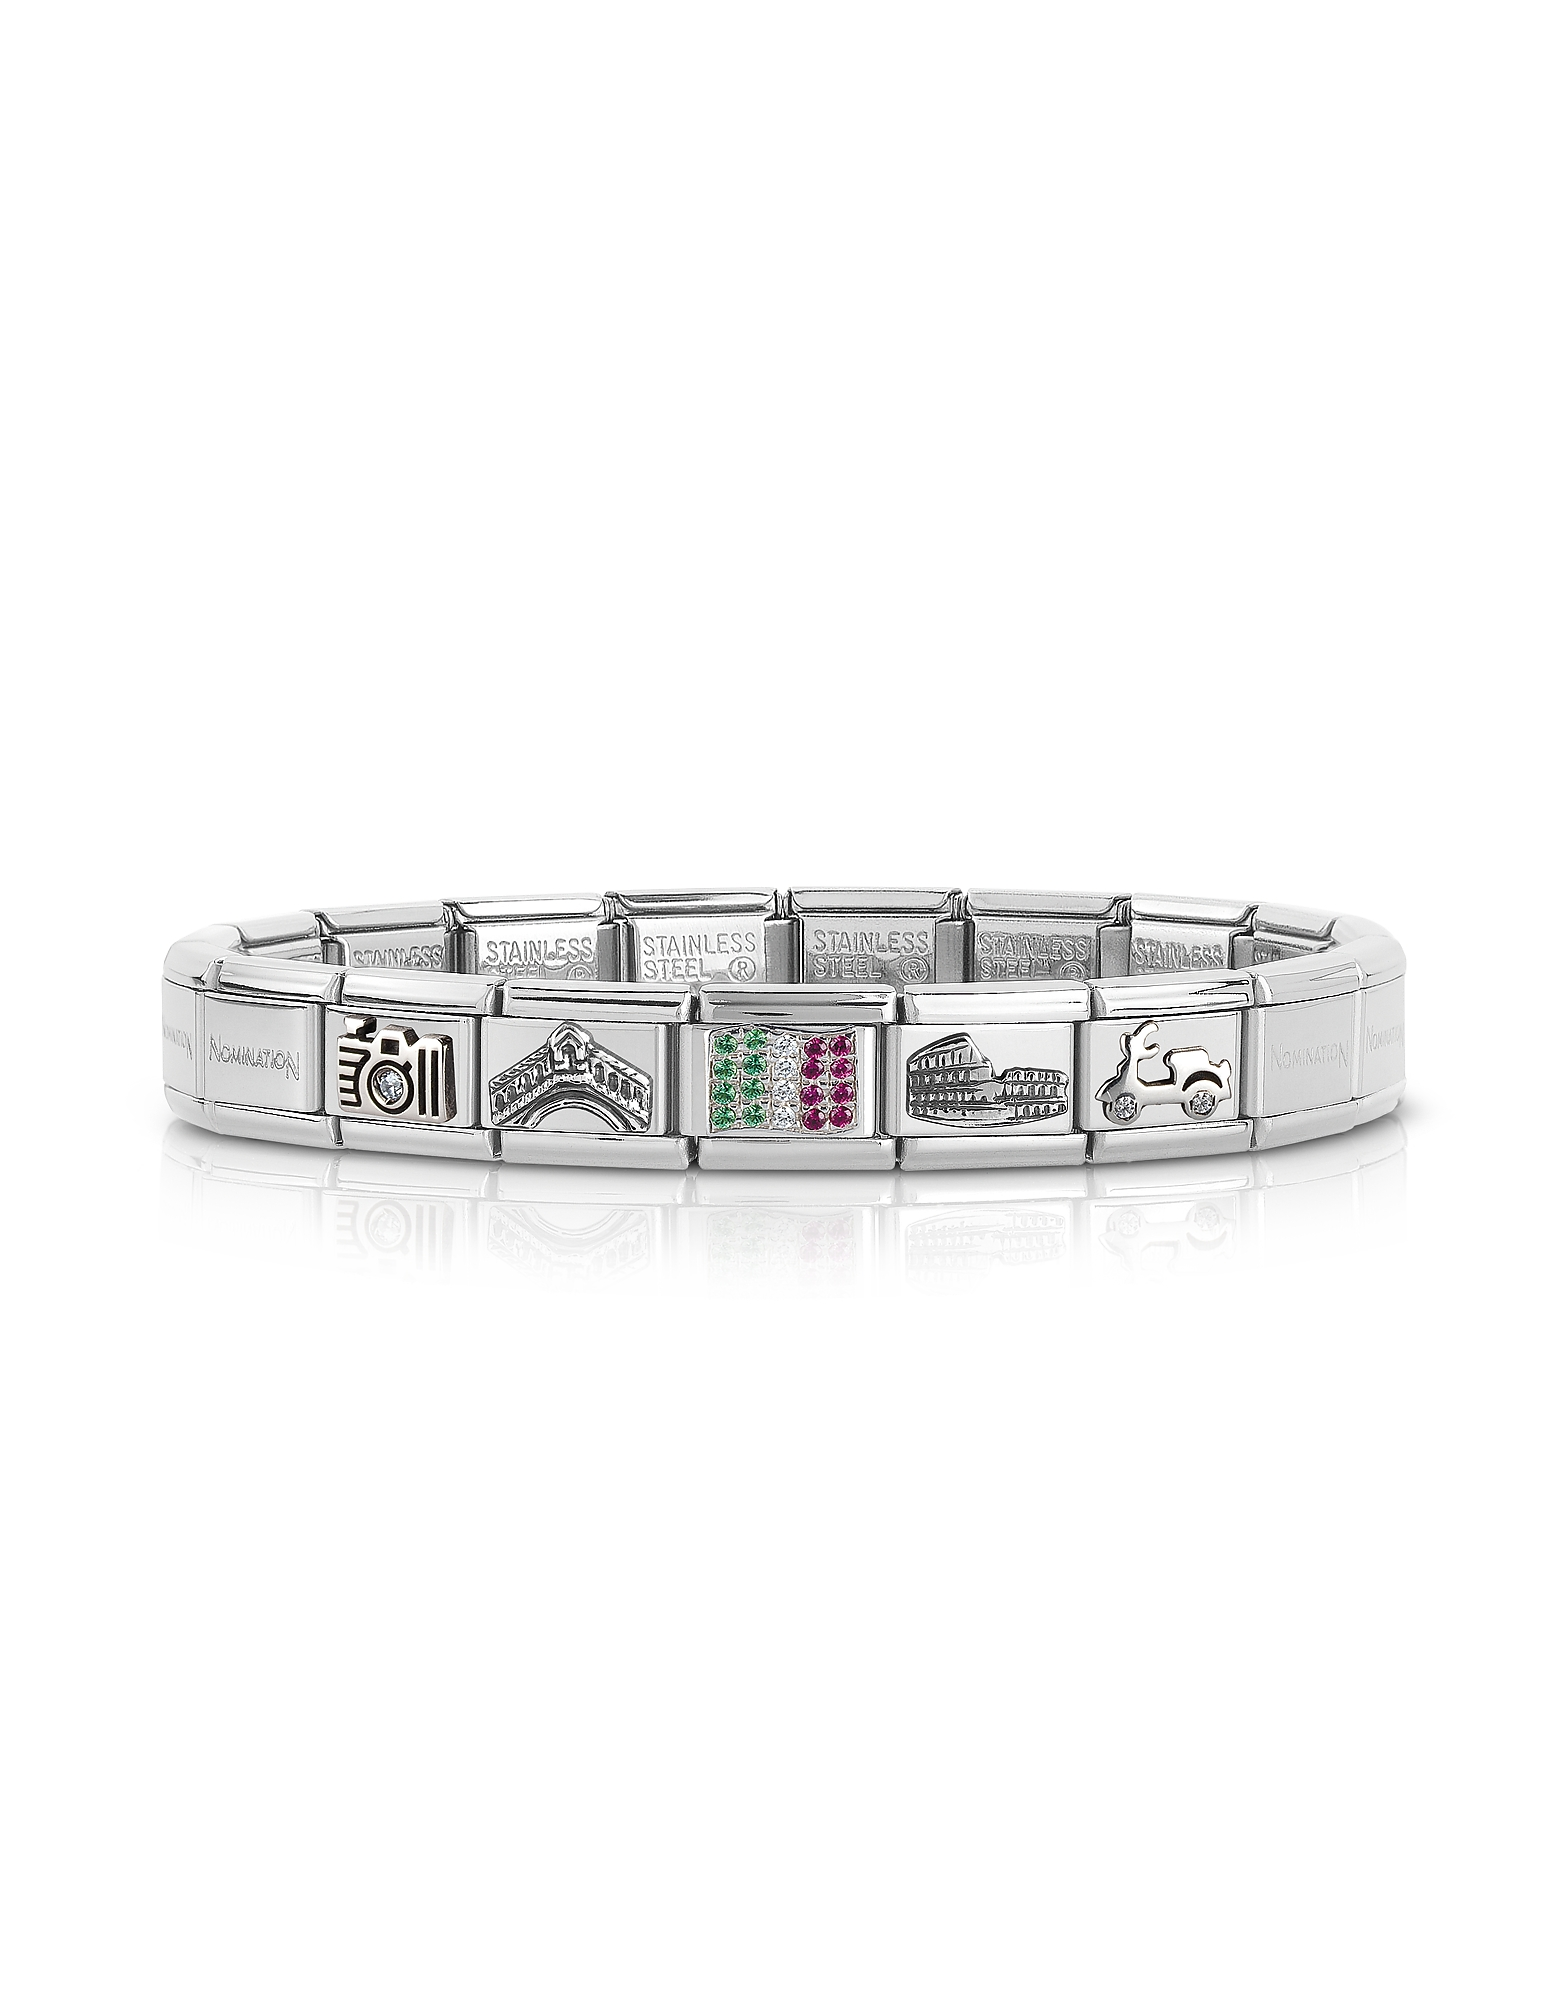 Nomination Bracelets, Travel in Italy Sterarling Silver and Stainless Steel Bracelet w/Cubic Zirconi